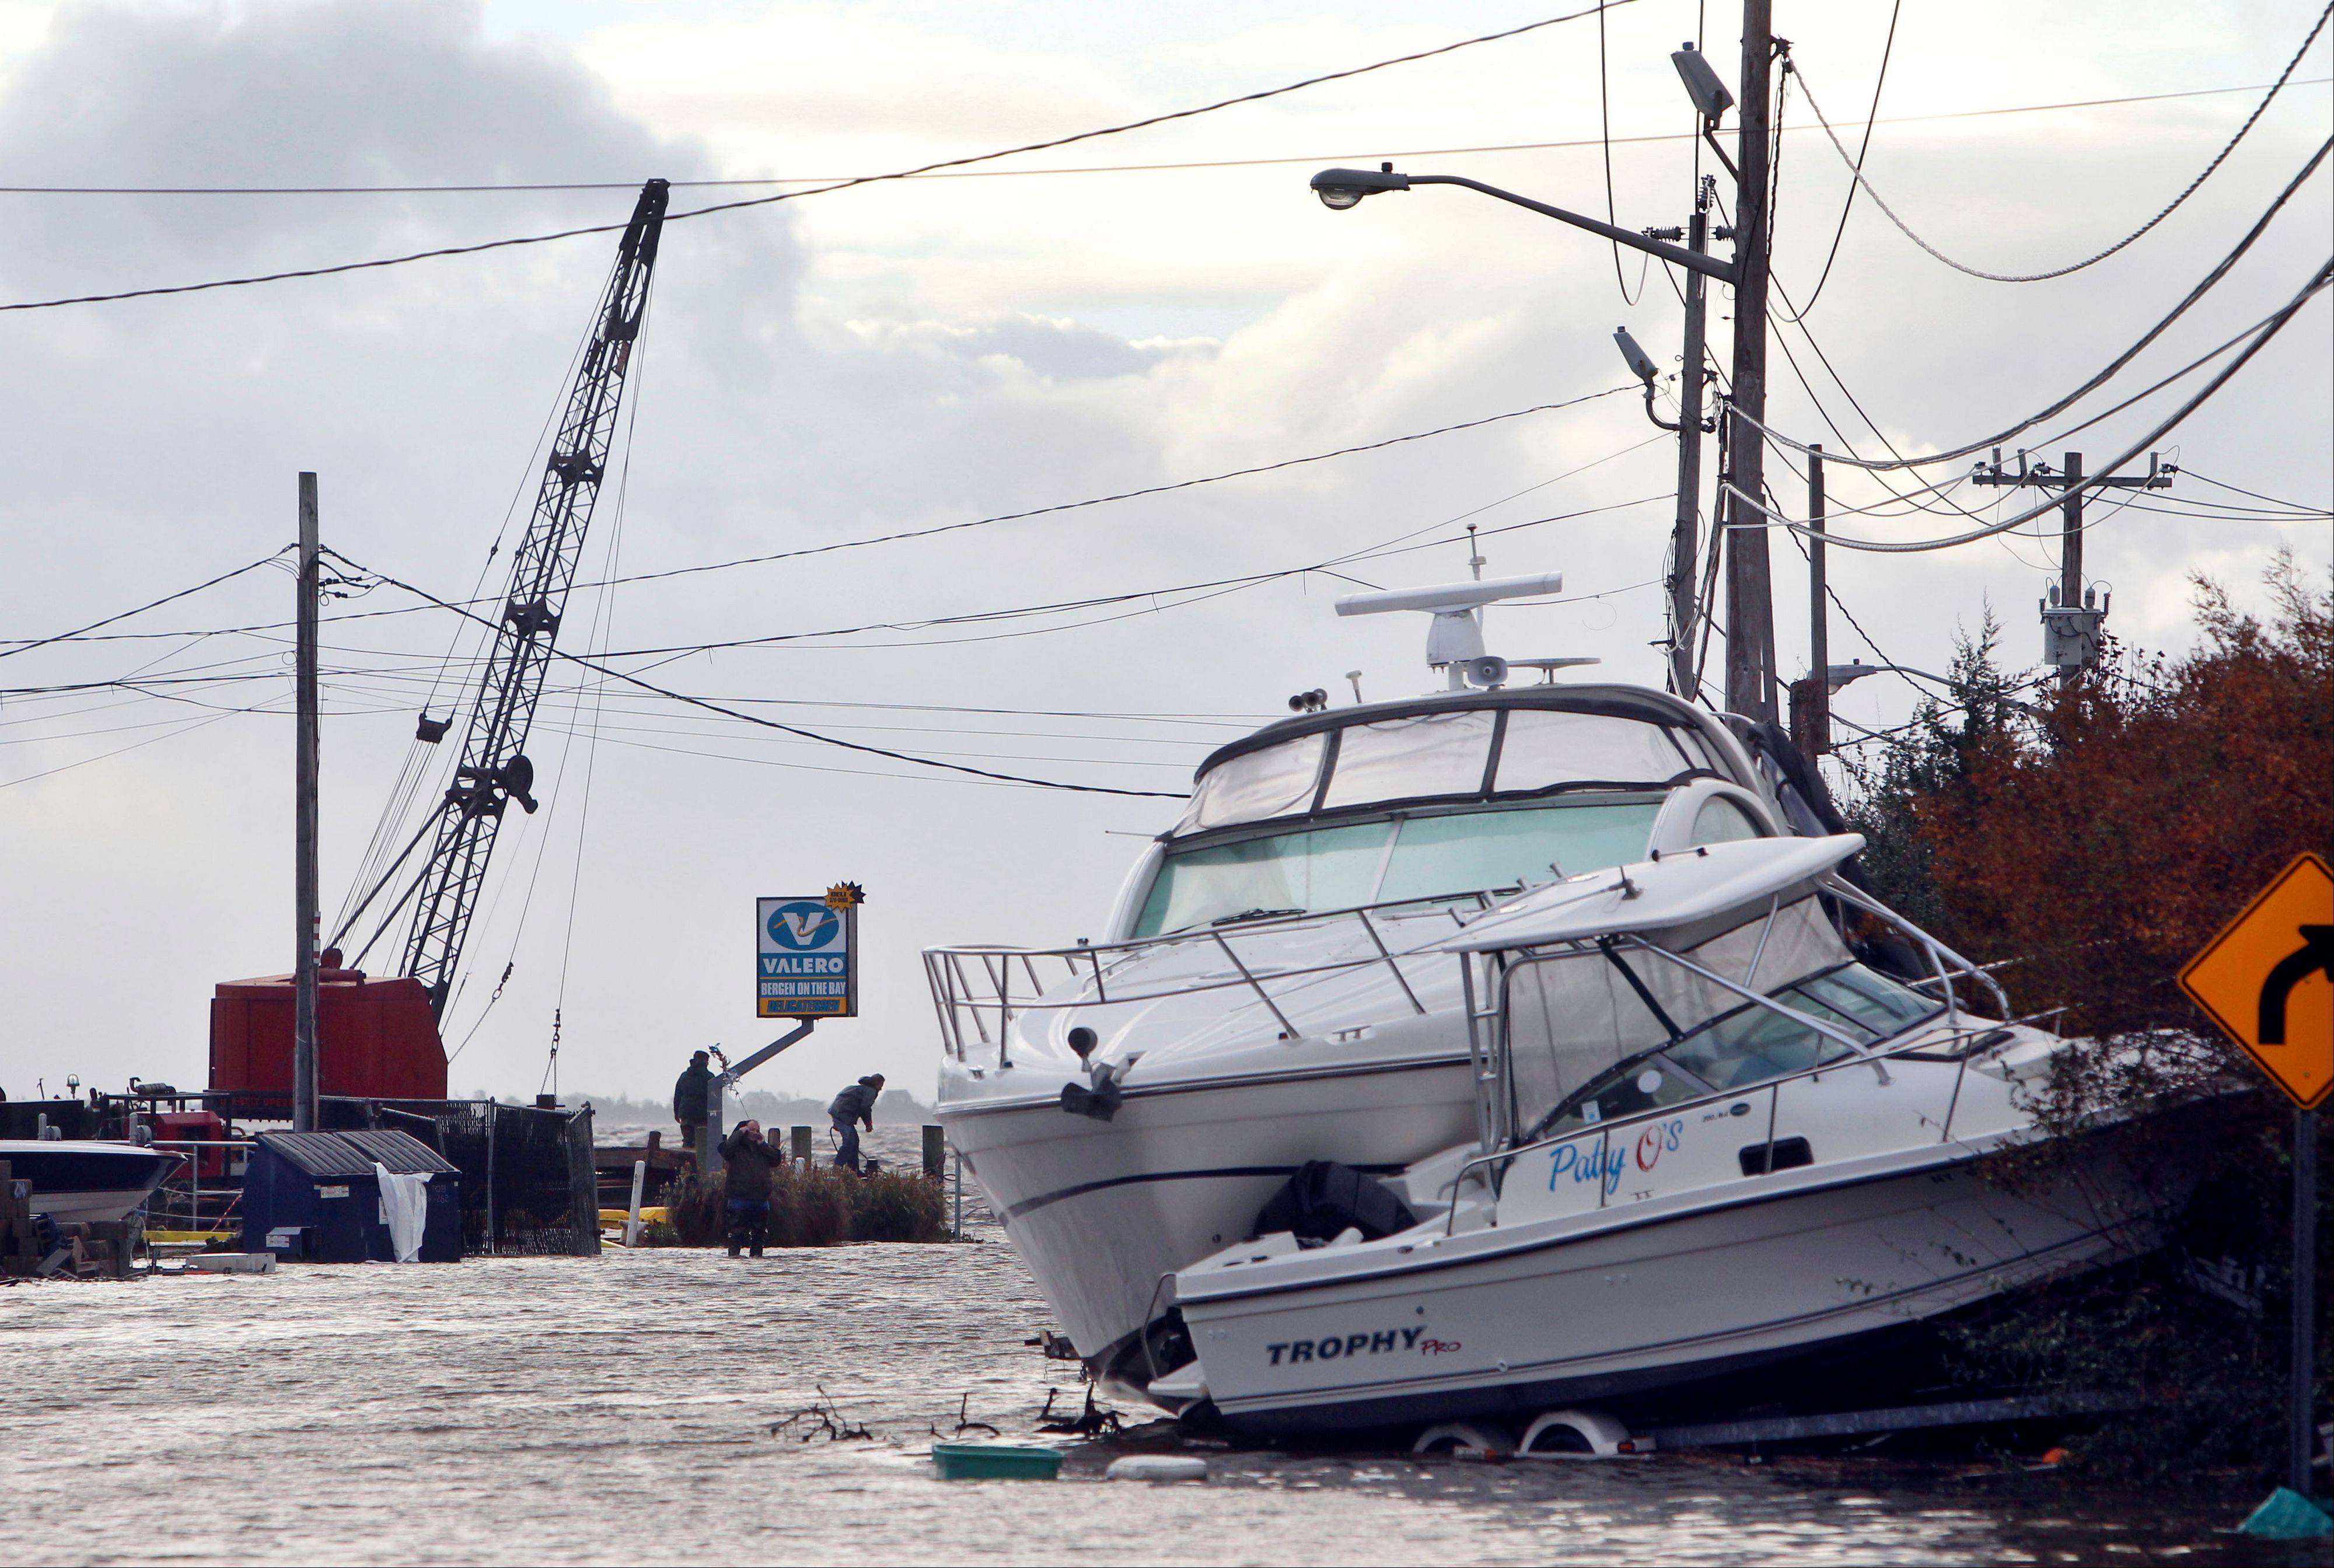 Boats lie piled up as people work to secure a fuel dock in the wake of superstorm Sandy, Tuesday, Oct. 30, 2012, in West Babylon, N.Y. The storm that made landfall in New Jersey on Monday evening with 80 mph sustained winds killed at least 16 people in seven states, cut power to more than 7.4 million homes and businesses from the Carolinas to Ohio, caused scares at two nuclear power plants and stopped the presidential campaign cold.